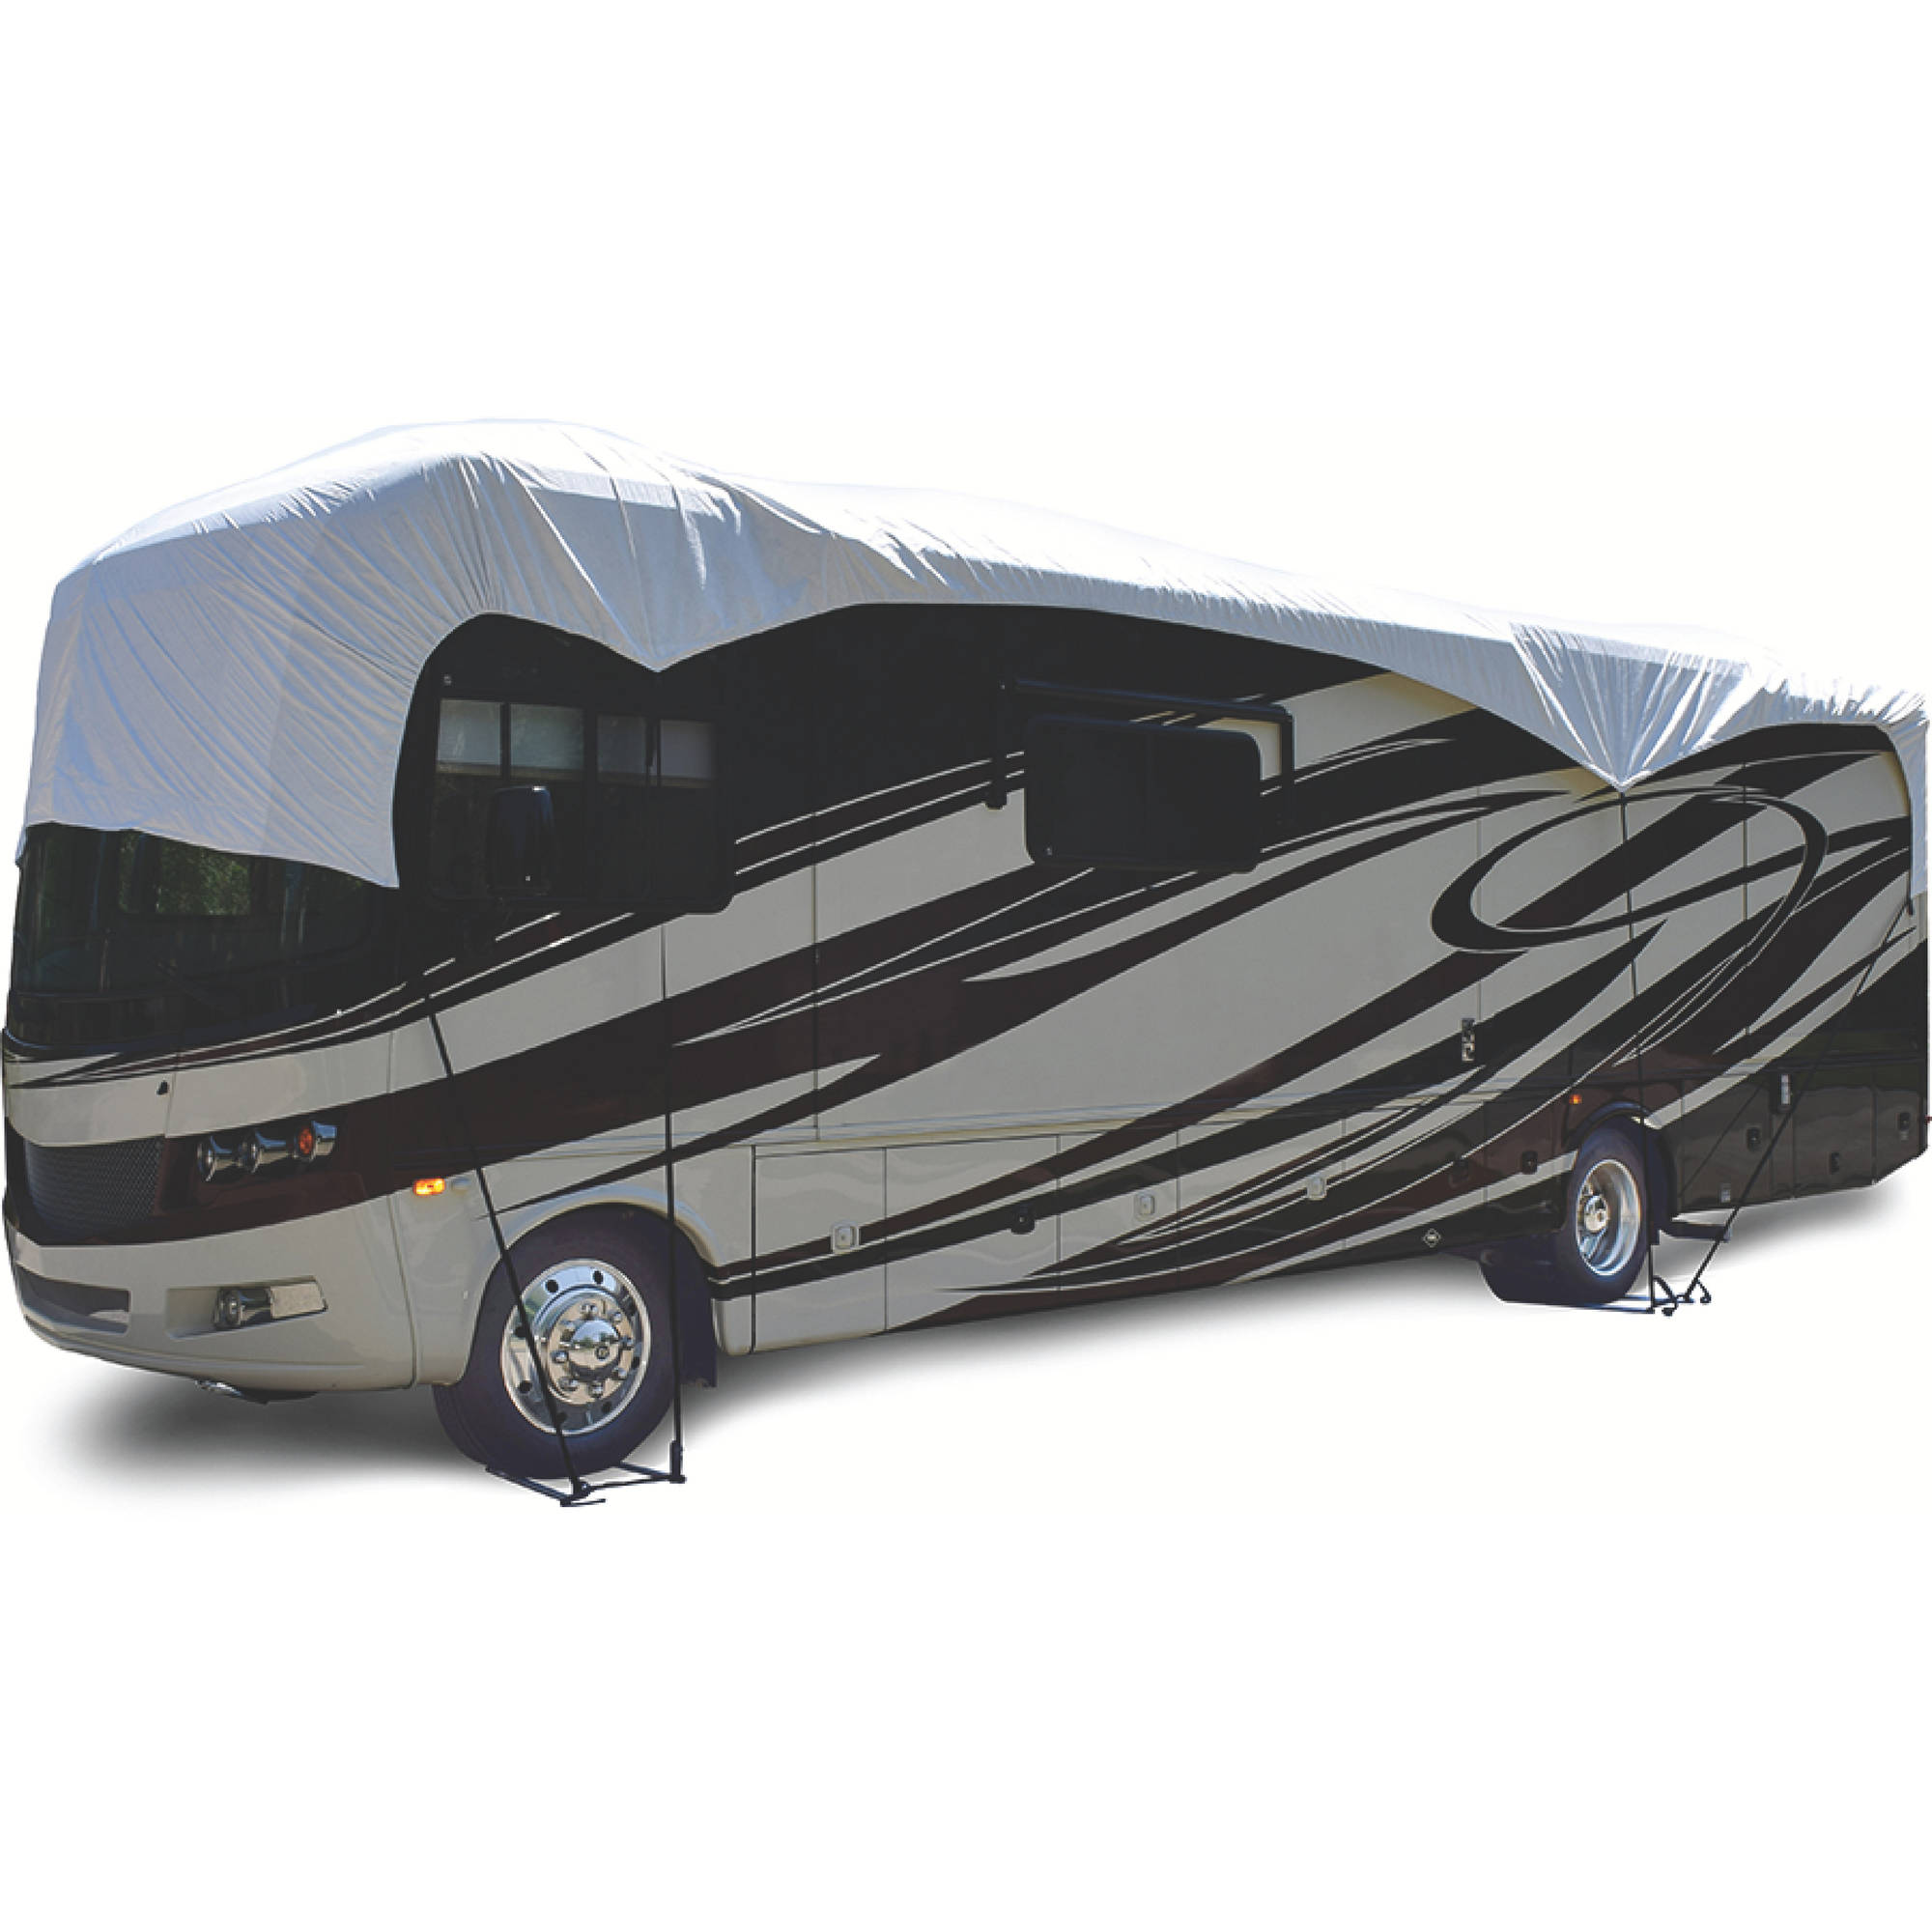 ADCO RV Roof Cover Fits Class A/Class C/Travel Trailer/Toyhauler and 5th Wheel, White Tyvek